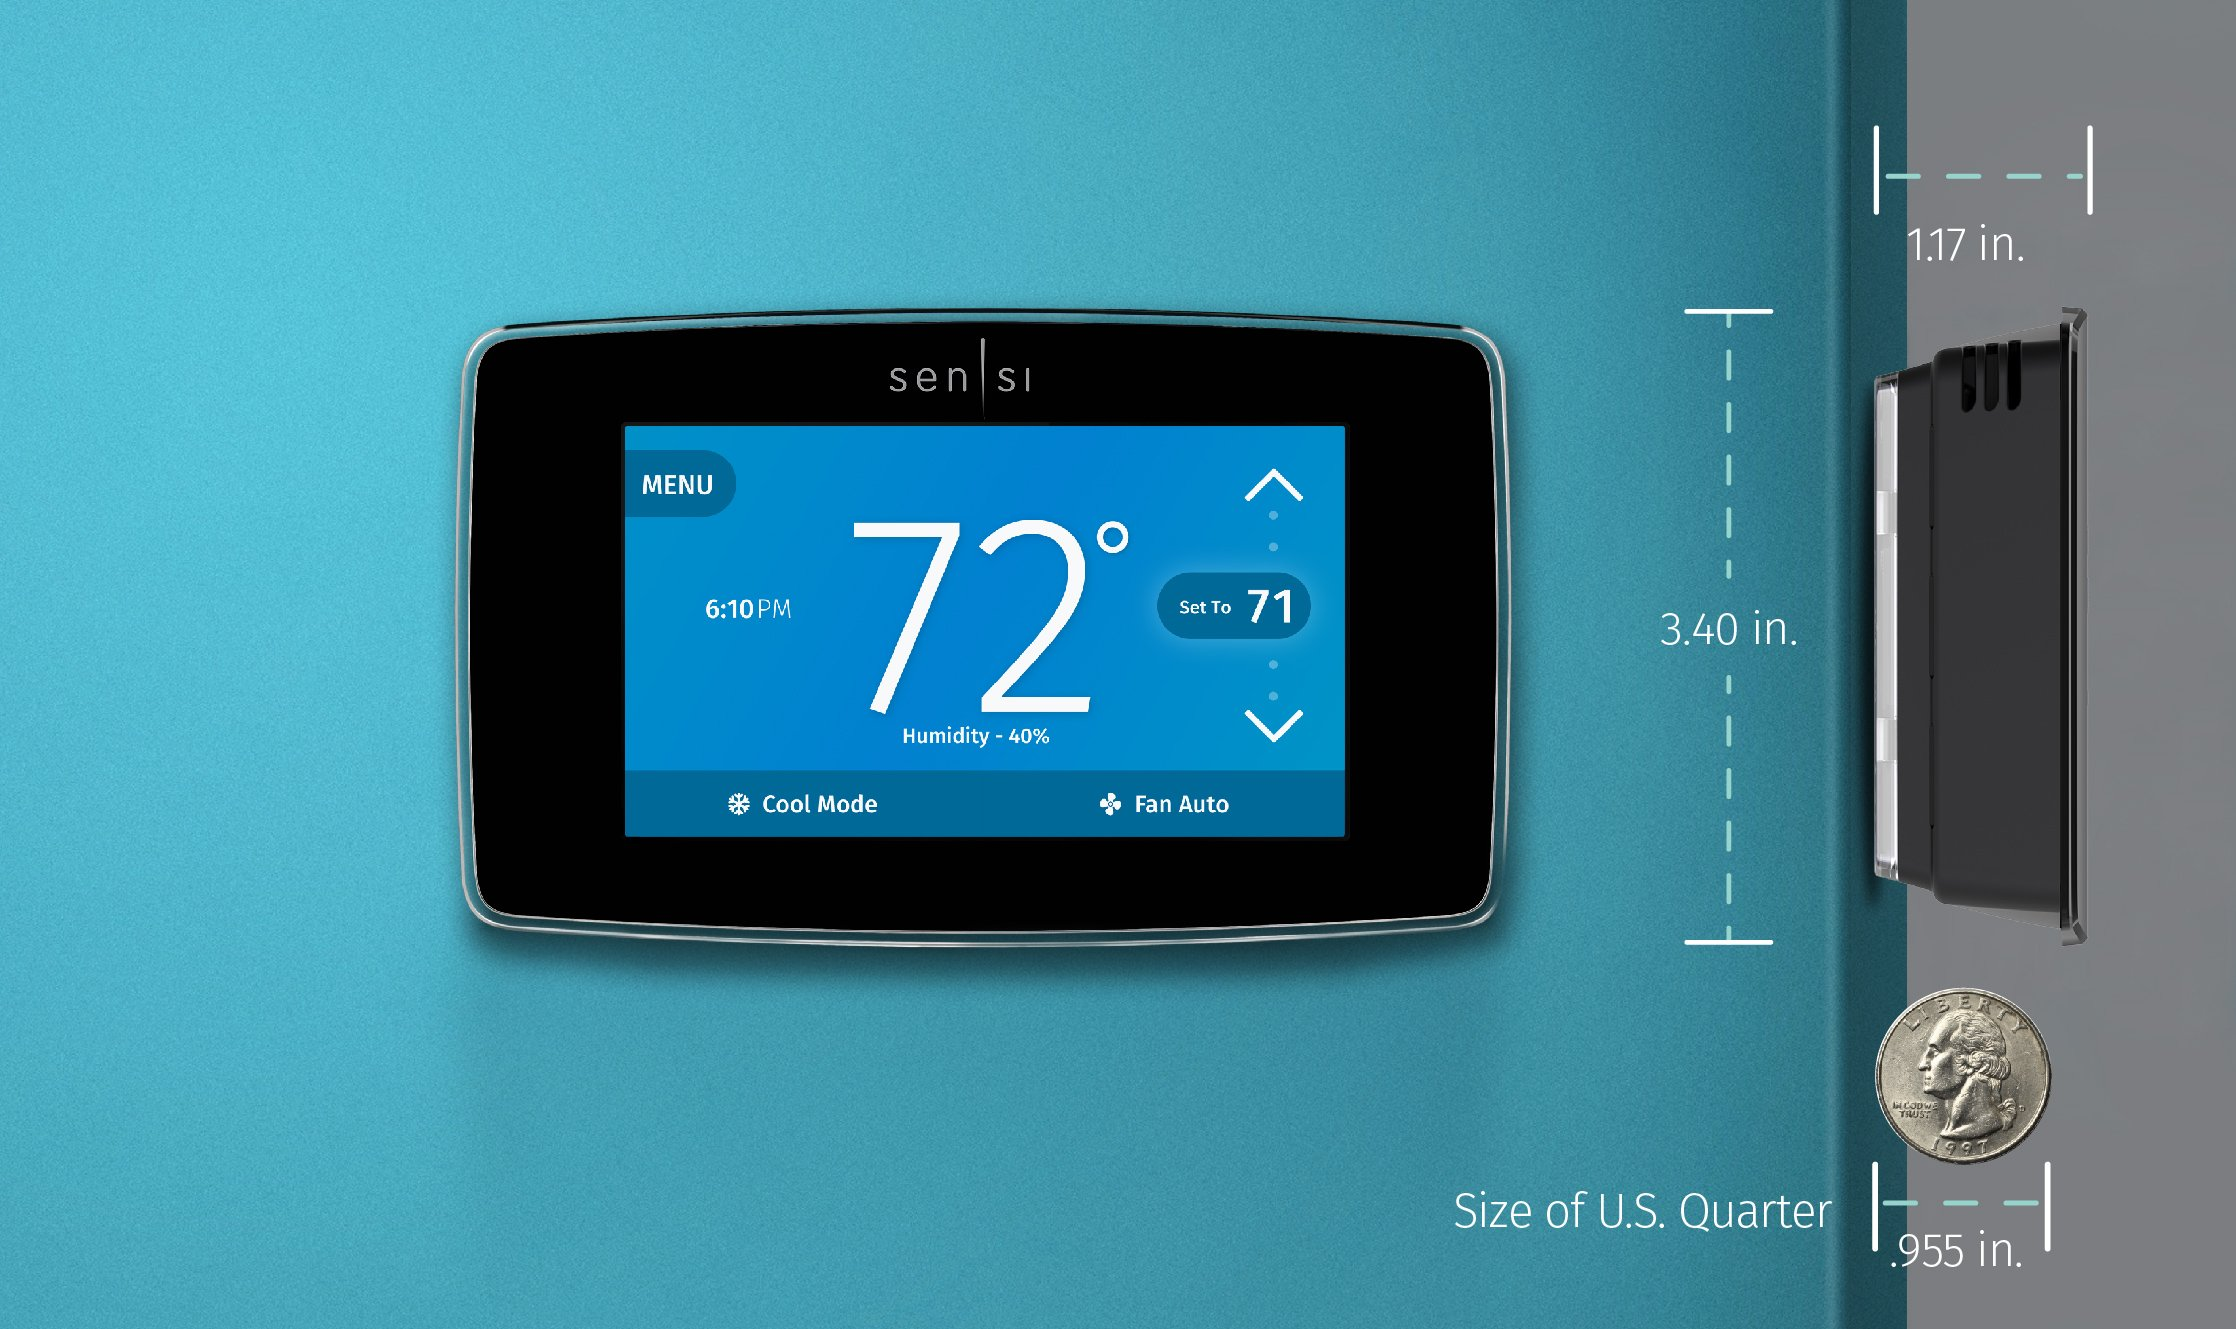 Emerson Sensi Touch Wi-Fi Thermostat with Touchscreen Color Display for Smart Home, ST75, Works with Alexa by Emerson Thermostats (Image #13)